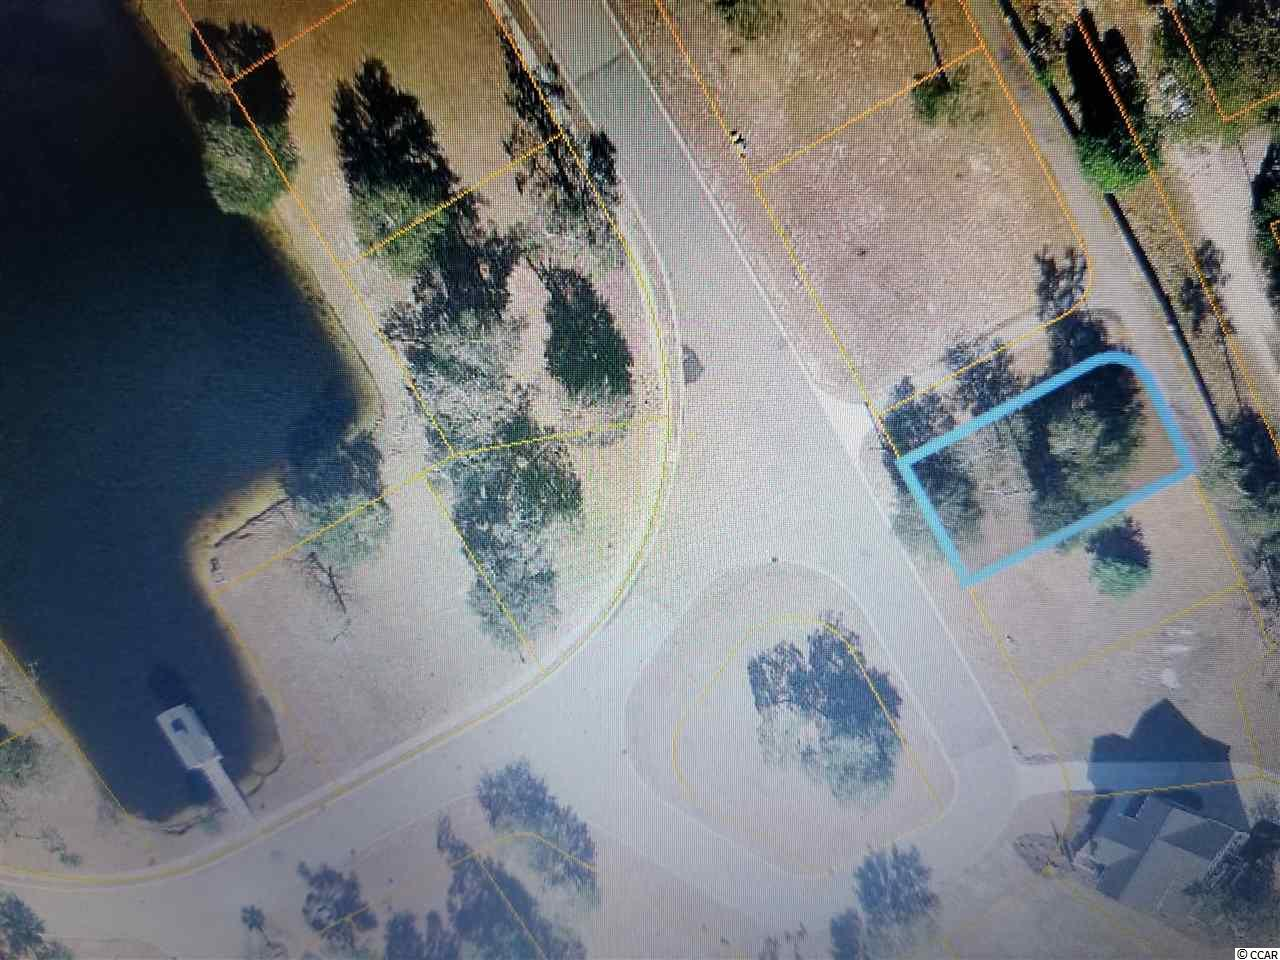 COME BUILD YOUR DREAM HOME ON THIS BIG, CLEARED LOT IN CHARLESTON LANDING! JUST MINUTES FROM THE BEAUTIFUL ATLANTIC OCEAN, THIS LOT IS NEAR THE CLUBHOUSE WITH VIEWS OF THE SPECTACULAR MARSH. NO TIME FRAME TO BUILD, AND YOU CAN CHOOSE YOUR OWN BUILDER. THIS PRESTIGIOUS NEIGHBORHOOD FEATURES LOW HOA FEES, CLUBHOUSE, AND GORGEOUS POOL! THE CHERRY GROVE SECTION OF NORTH MYRTLE BEACH IS CLOSE TO GREAT SCHOOLS, FINE DINING, EXPANDED HOSPITALS, SHOPPING, CHAMPIONSHIP GOLF COURSES, AND ALL THE COMMUNITY EVENTS ON MAIN STREET!